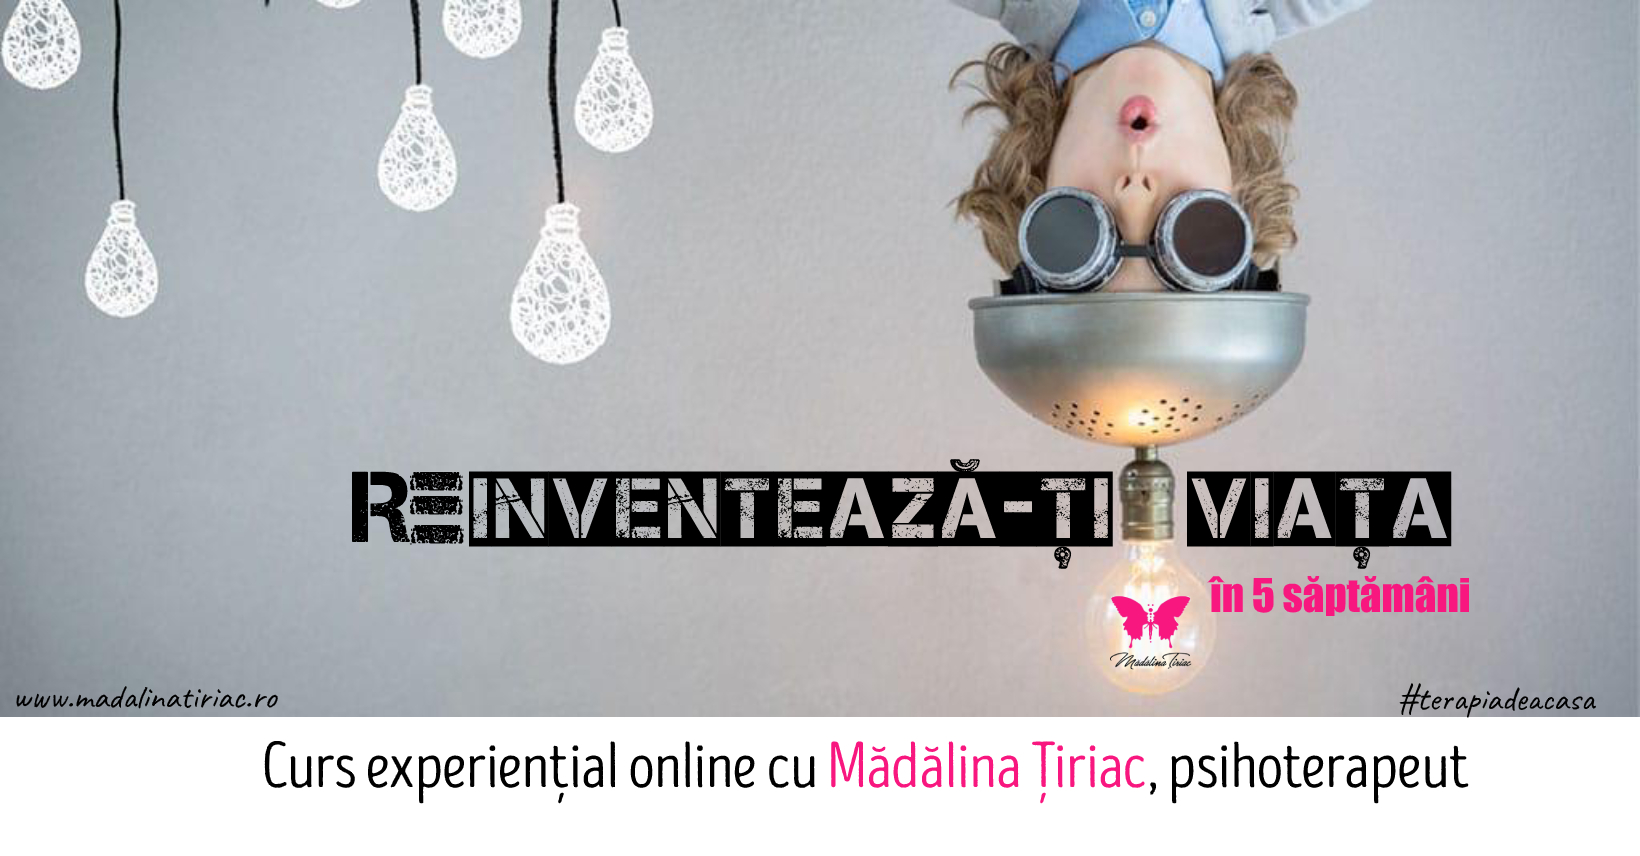 curs experiential online